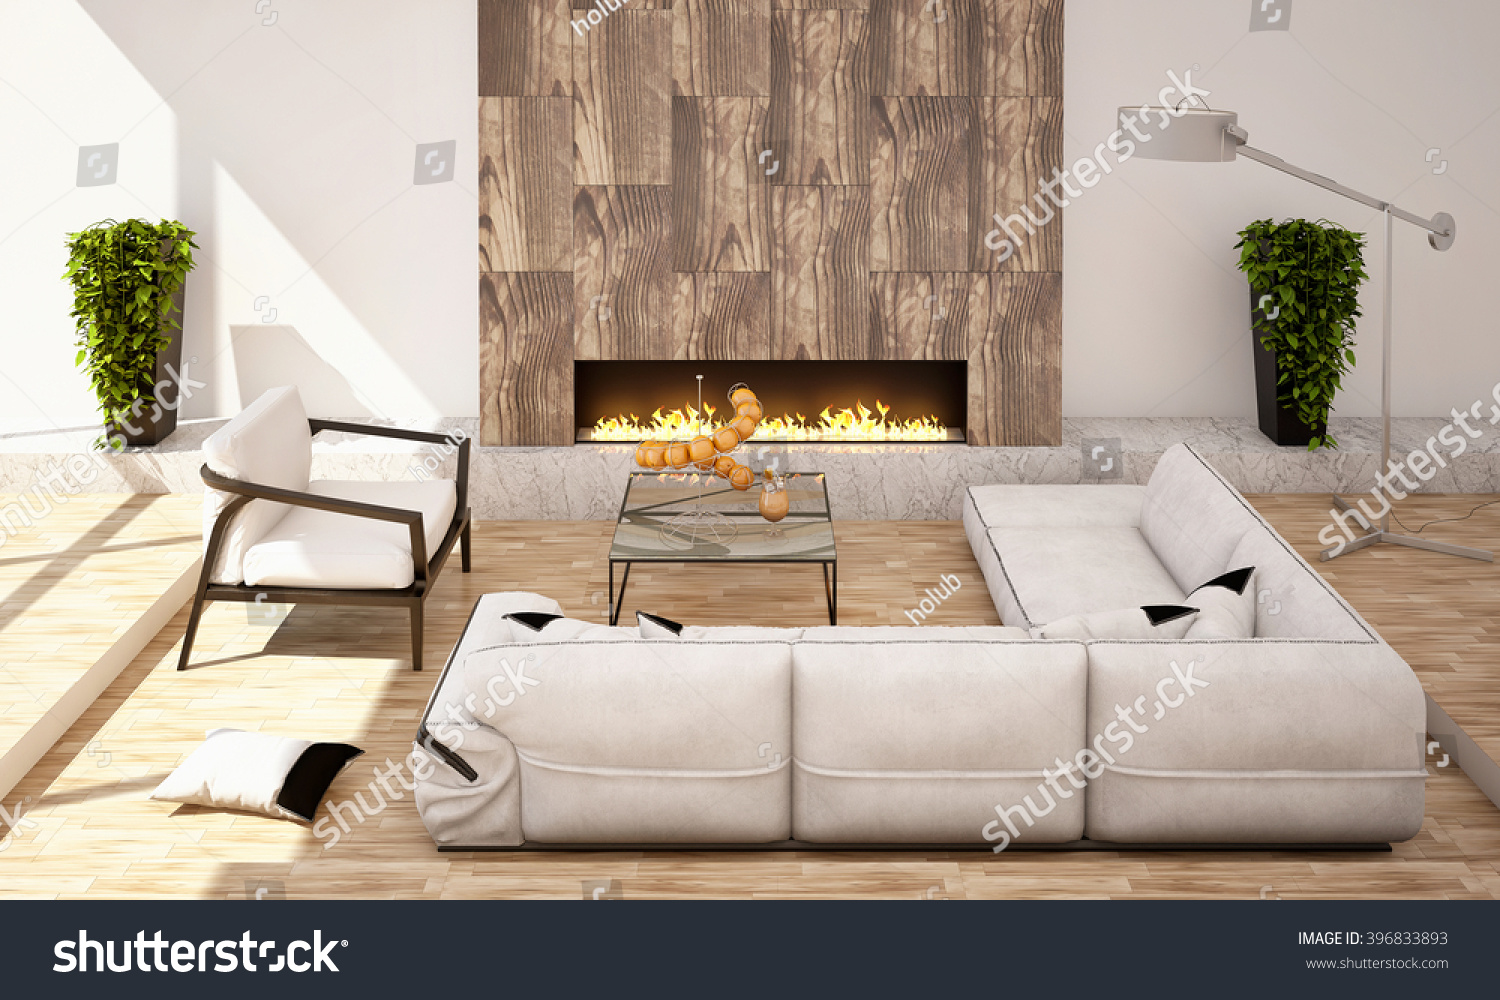 Living Room Fireplace Big Sofa Armchair Stock Illustration 396833893 Shutterstock